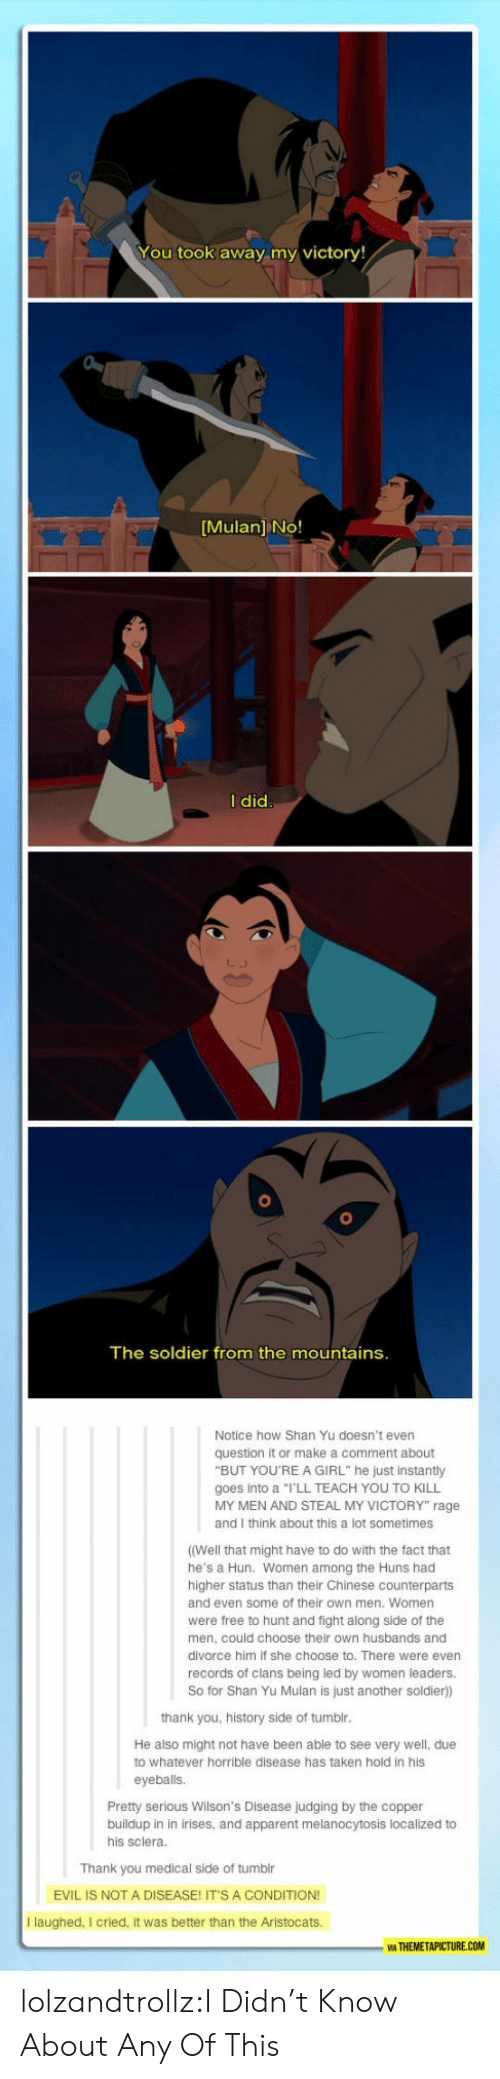 "Among: You took away my victory!  [Mulan] No!  I did  The soldier from the mountains.  Notice how Shan Yu doesn't even  question it or make a comment about  ""BUT YOU'REA GIRL"" he just instantly  goes into a ""I'LL TEACH YOU TO KILL  MY MEN AND STEAL MY VICTORY"" rage  and I think about this a lot sometimes  ((Well that might have to do with the fact that  he's a Hun. Women among the Huns had  higher status than their Chinese counterparts  and even some of their own men. Women  were free to hunt and fight along side of the  men, could choose their own husbands and  divorce him if she choose to. There were even  records of clans being led by women leaders.  So for Shan Yu Mulan is just another soldier))  thank you, history side of tumblr.  He also might not have been able to see very well, due  to whatever horrible disease has taken hold in his  eyeballs.  Pretty serious Wilson's Disease judging by the copper  buildup in in irises, and apparent melanocytosis localized to  his sclera.  Thank you medical side of tumblr  EVIL IS NOT A DISEASE! IT'S A CONDITION!  I laughed, I cried, it was better than the Aristocats.  WA THEMETAPICTURE.COM lolzandtrollz:I Didn't Know About Any Of This"